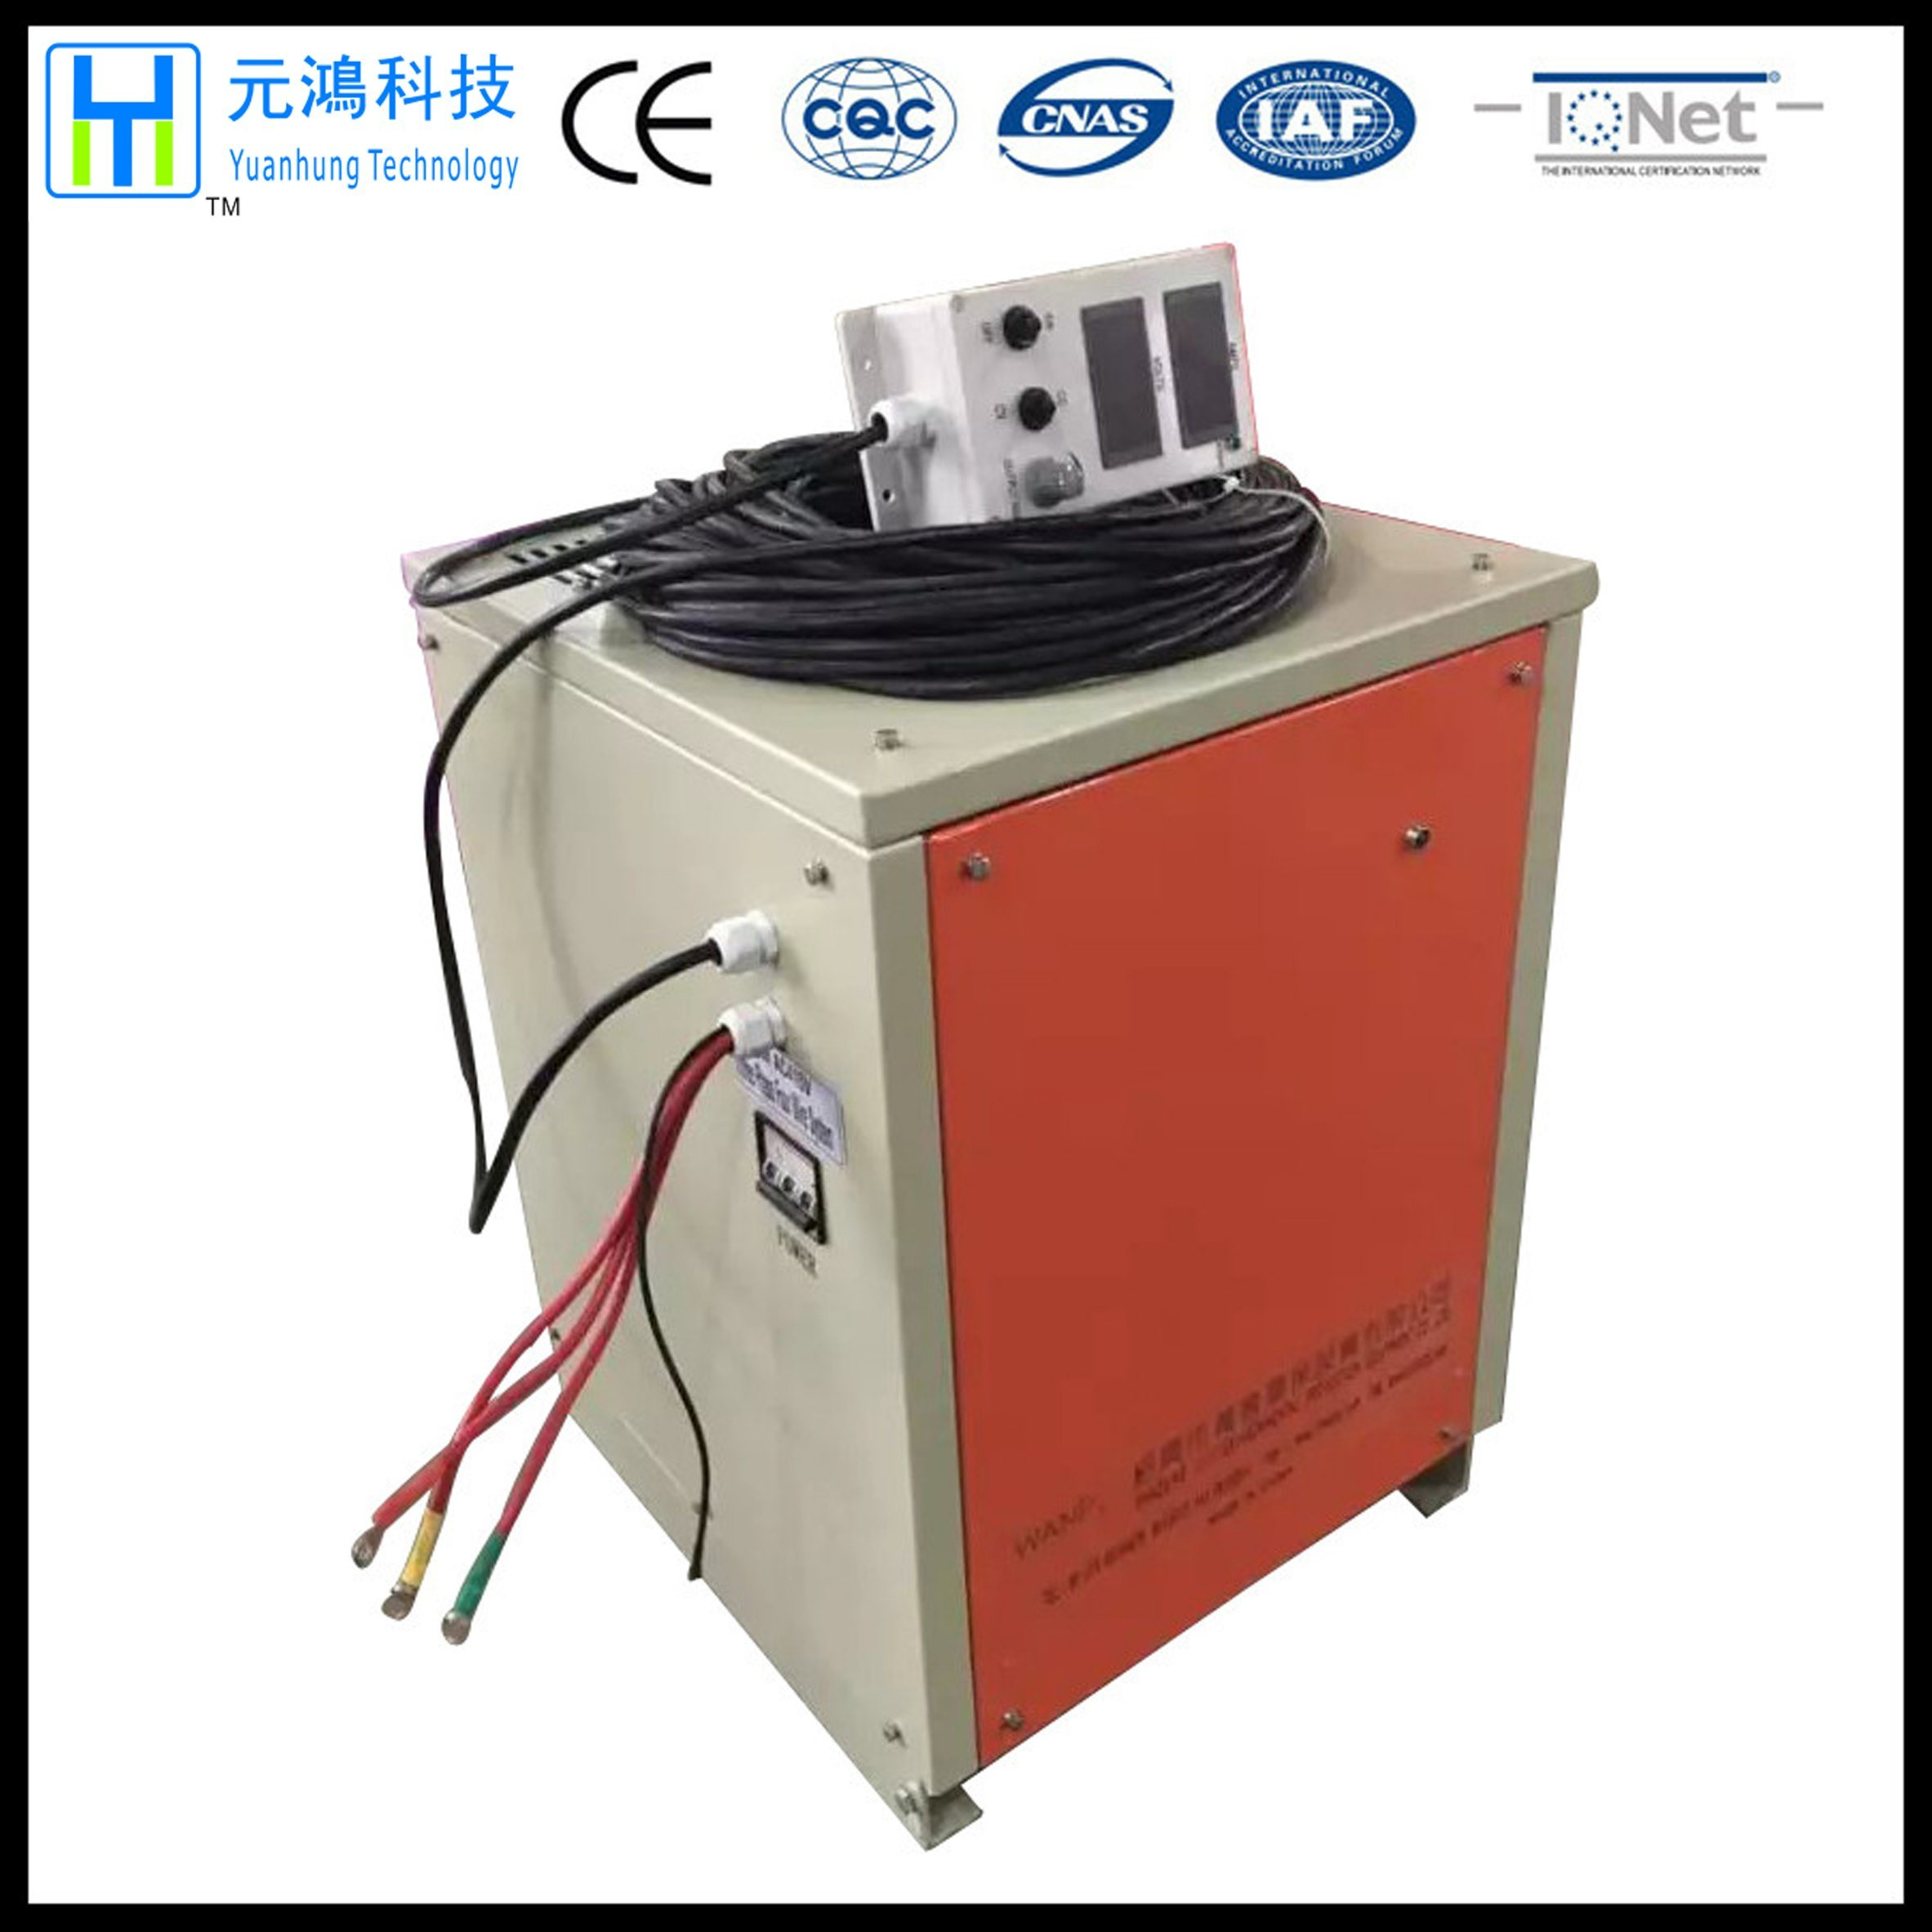 1500A 15V Zinc Plating Rectifier with 4-20mA Control Signal